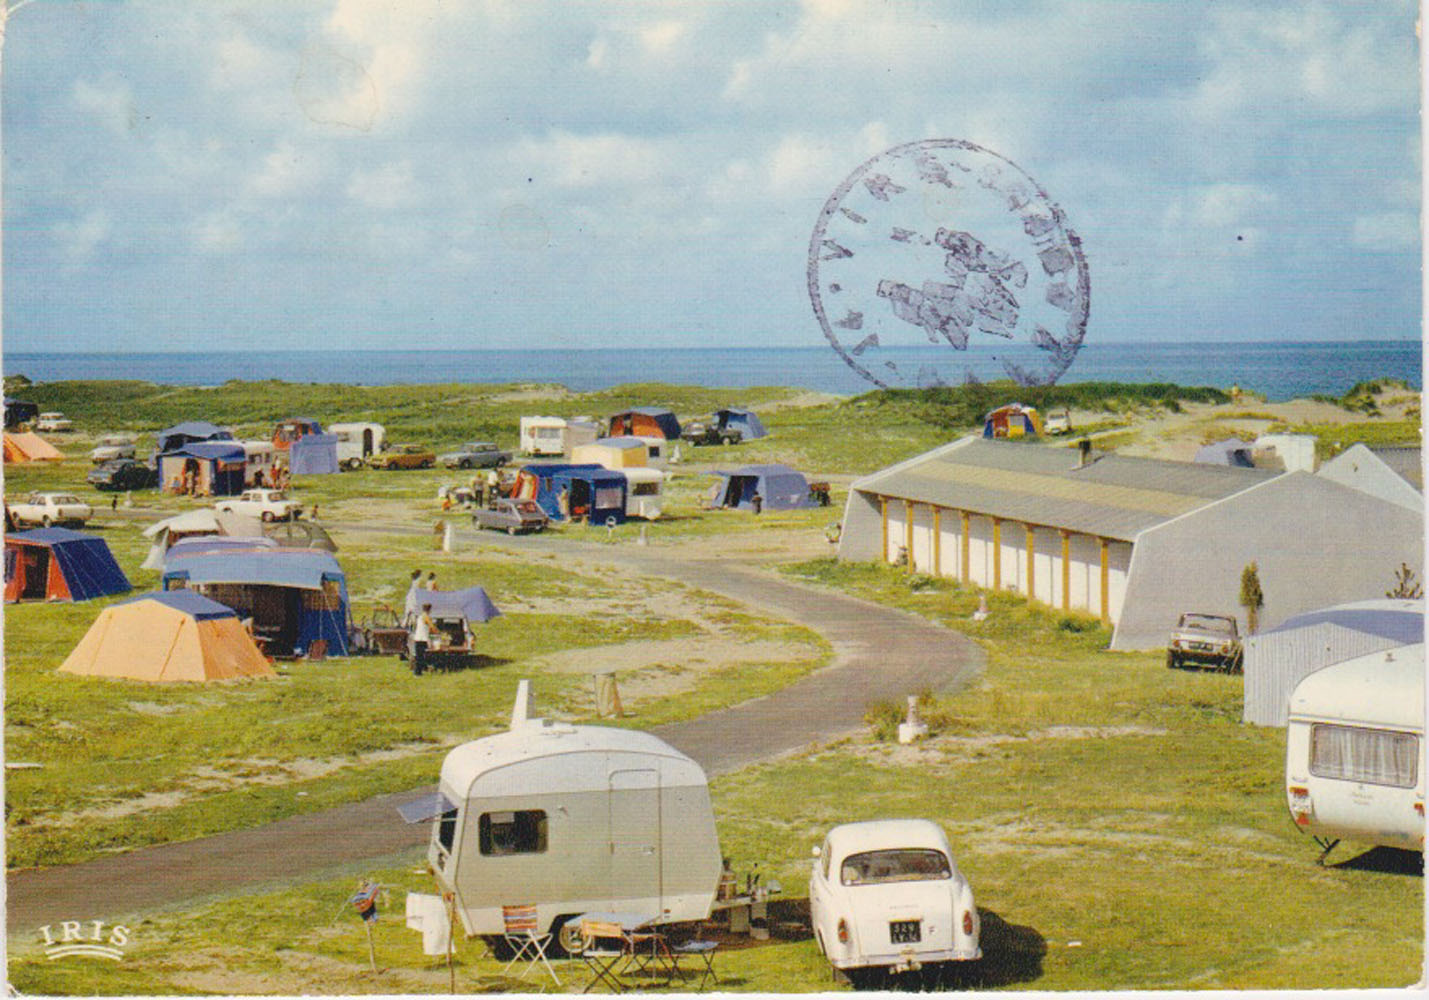 1973 St Martin Sites Camping Vanlée © collection Jean Claude Ferret